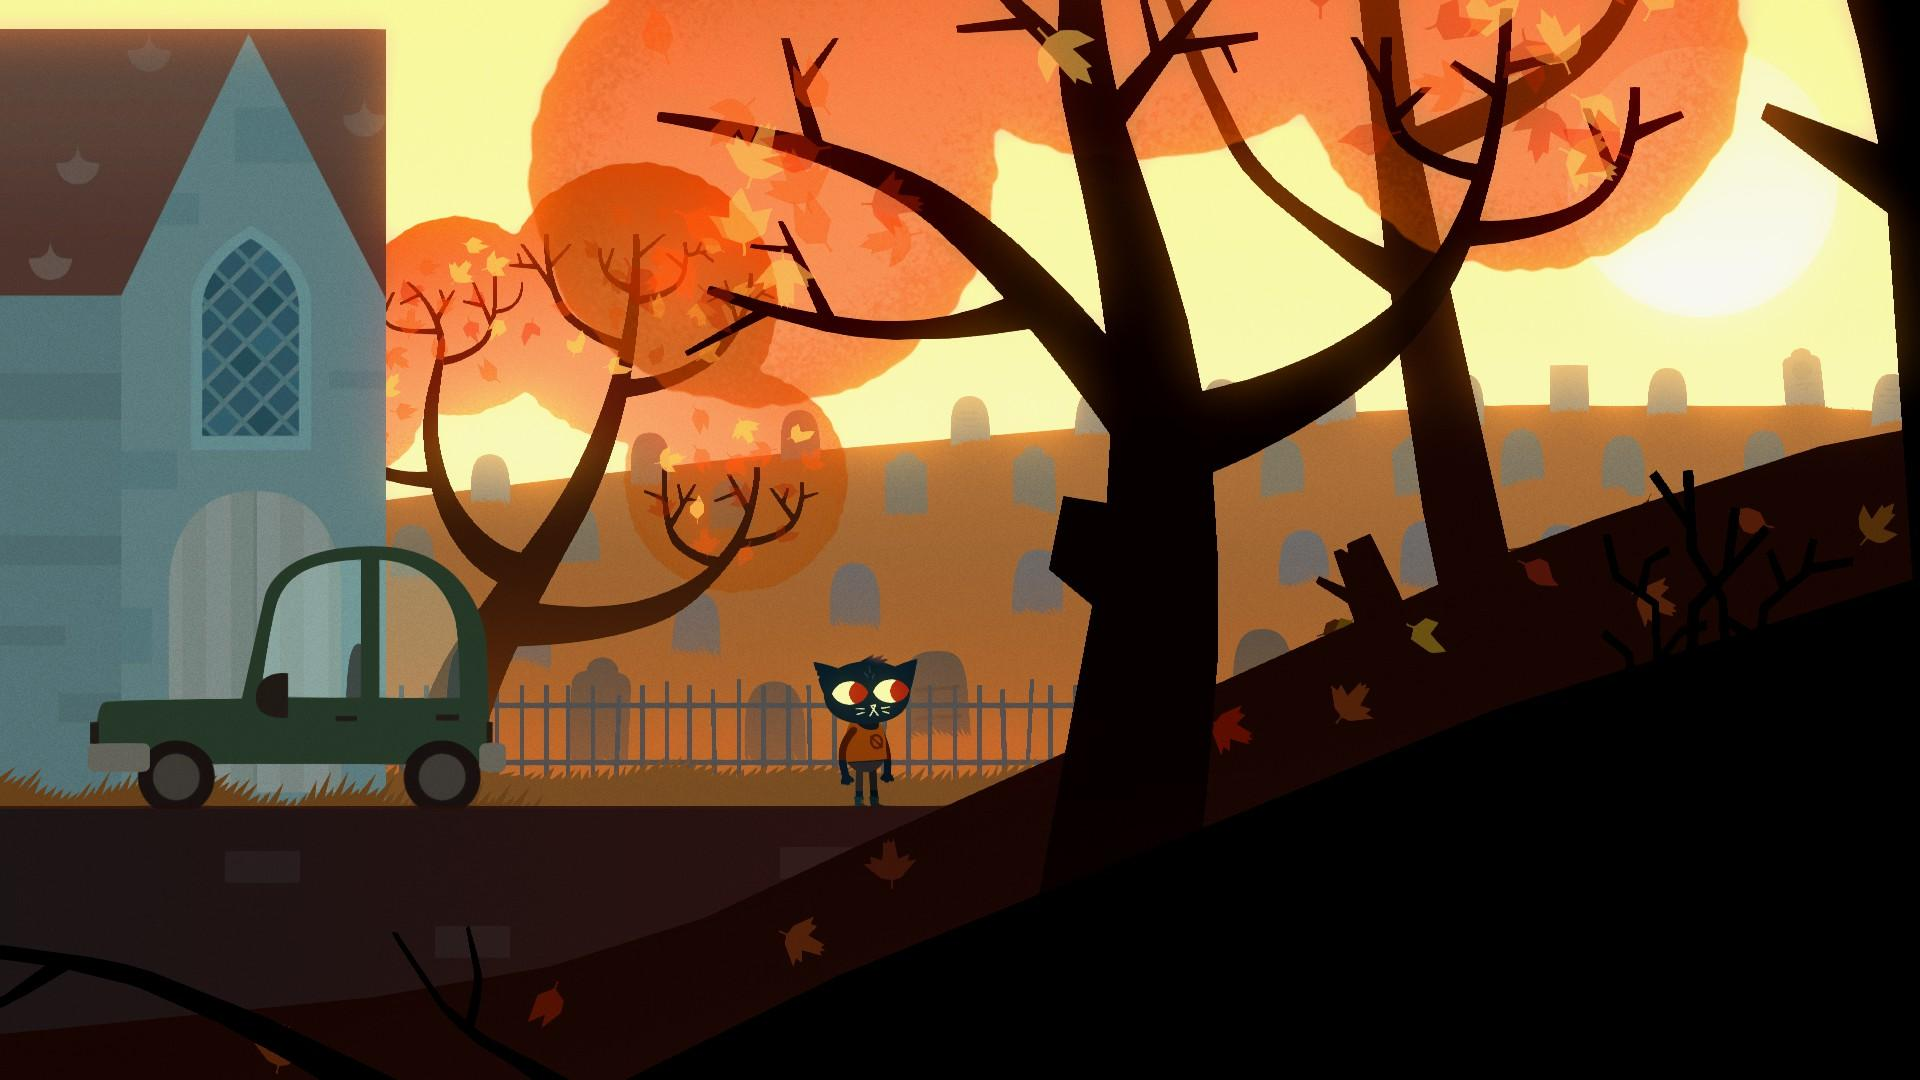 In Night in the Woods, developed by Infinite Fall, players explore Possum Springs as Mae Borowski, a 20-year-old college dropout returning to her hometown and rediscovering the life she left behind.